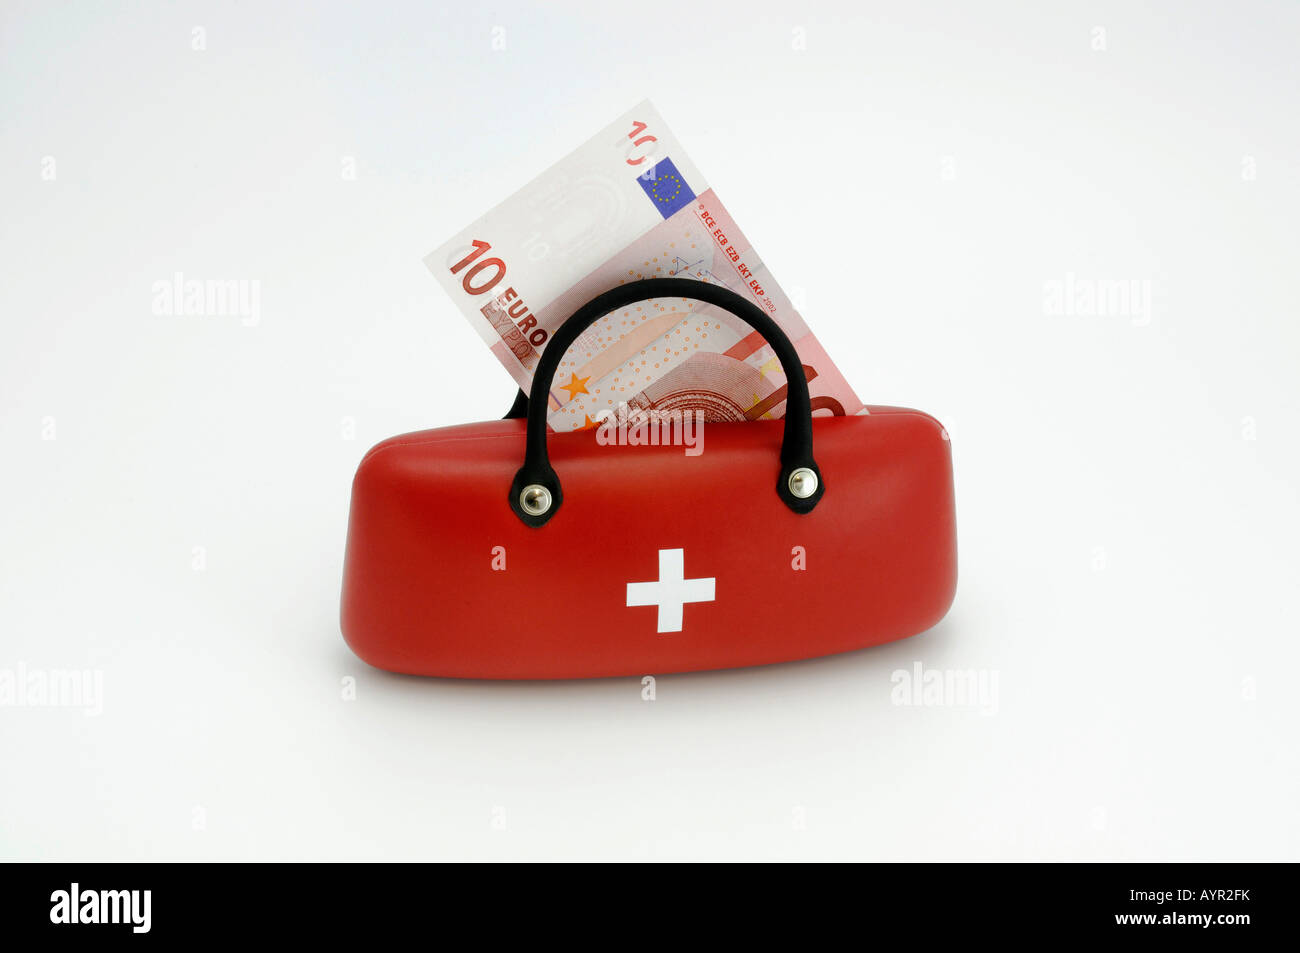 10-Euro note in a medical bag, symbol for doctor's fees Stock Photo